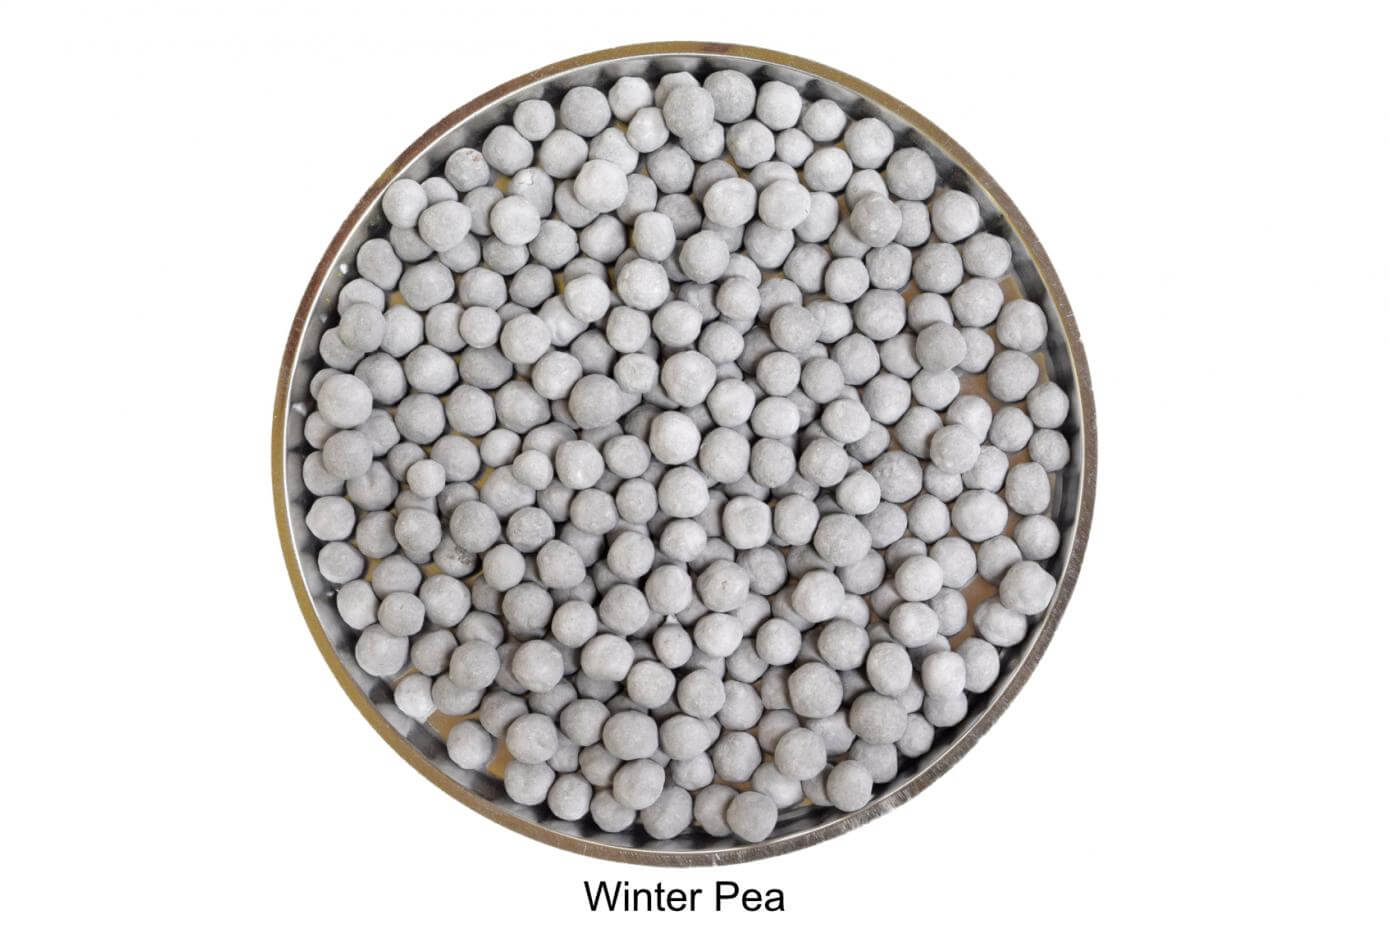 Coated winter pea seeds